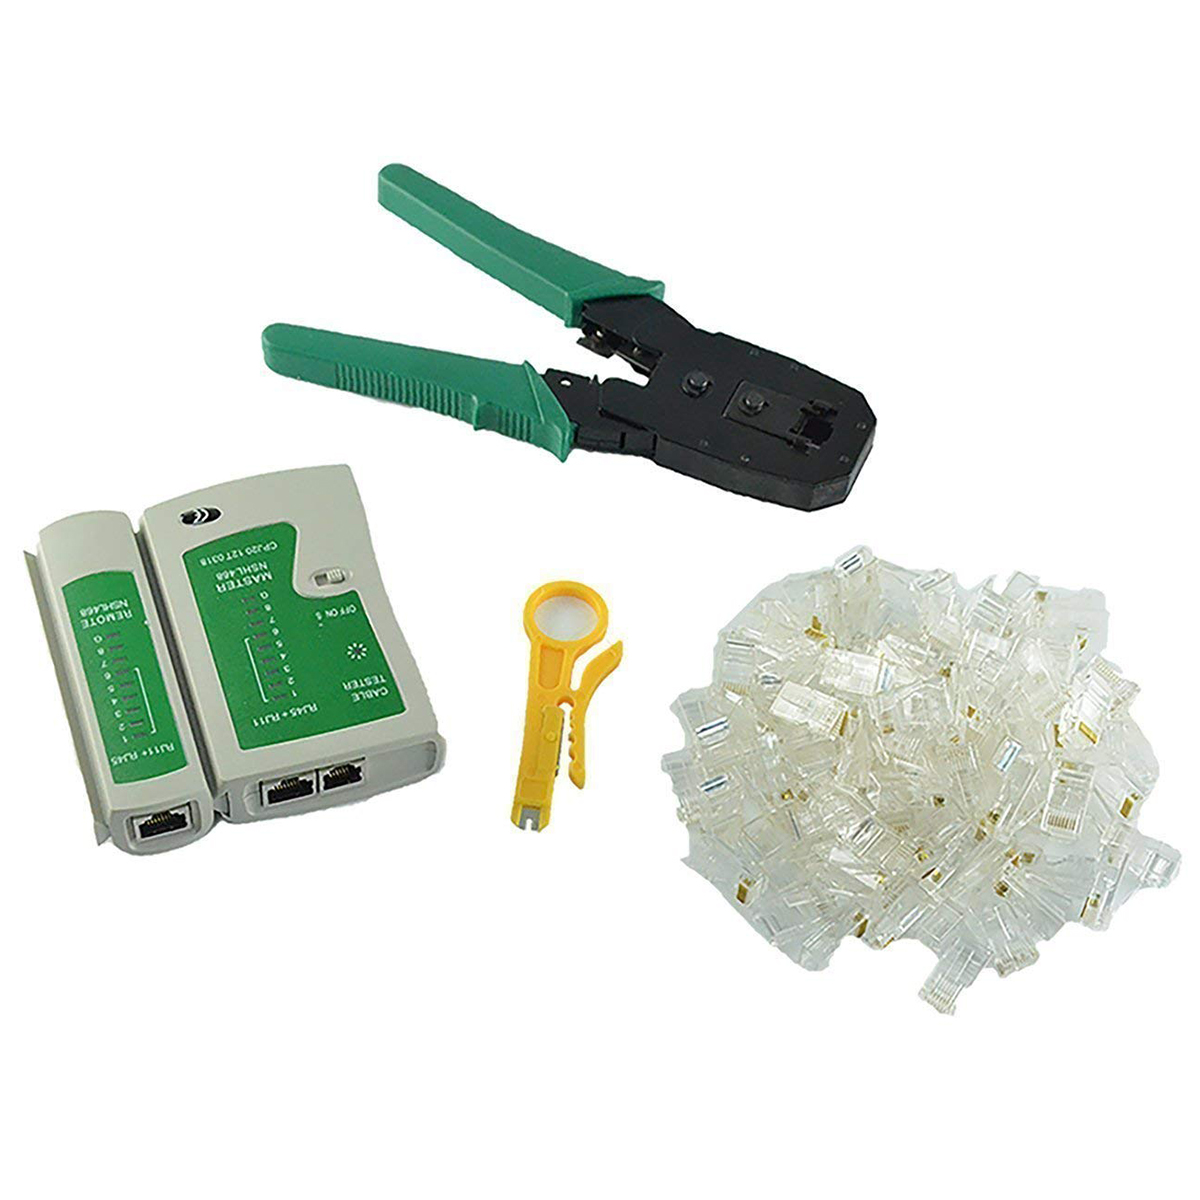 Cable-Tester Connector-Plug Crimper Network Wire-Stripper Ethernet-Lan-Kit Cat5e Rj45 title=